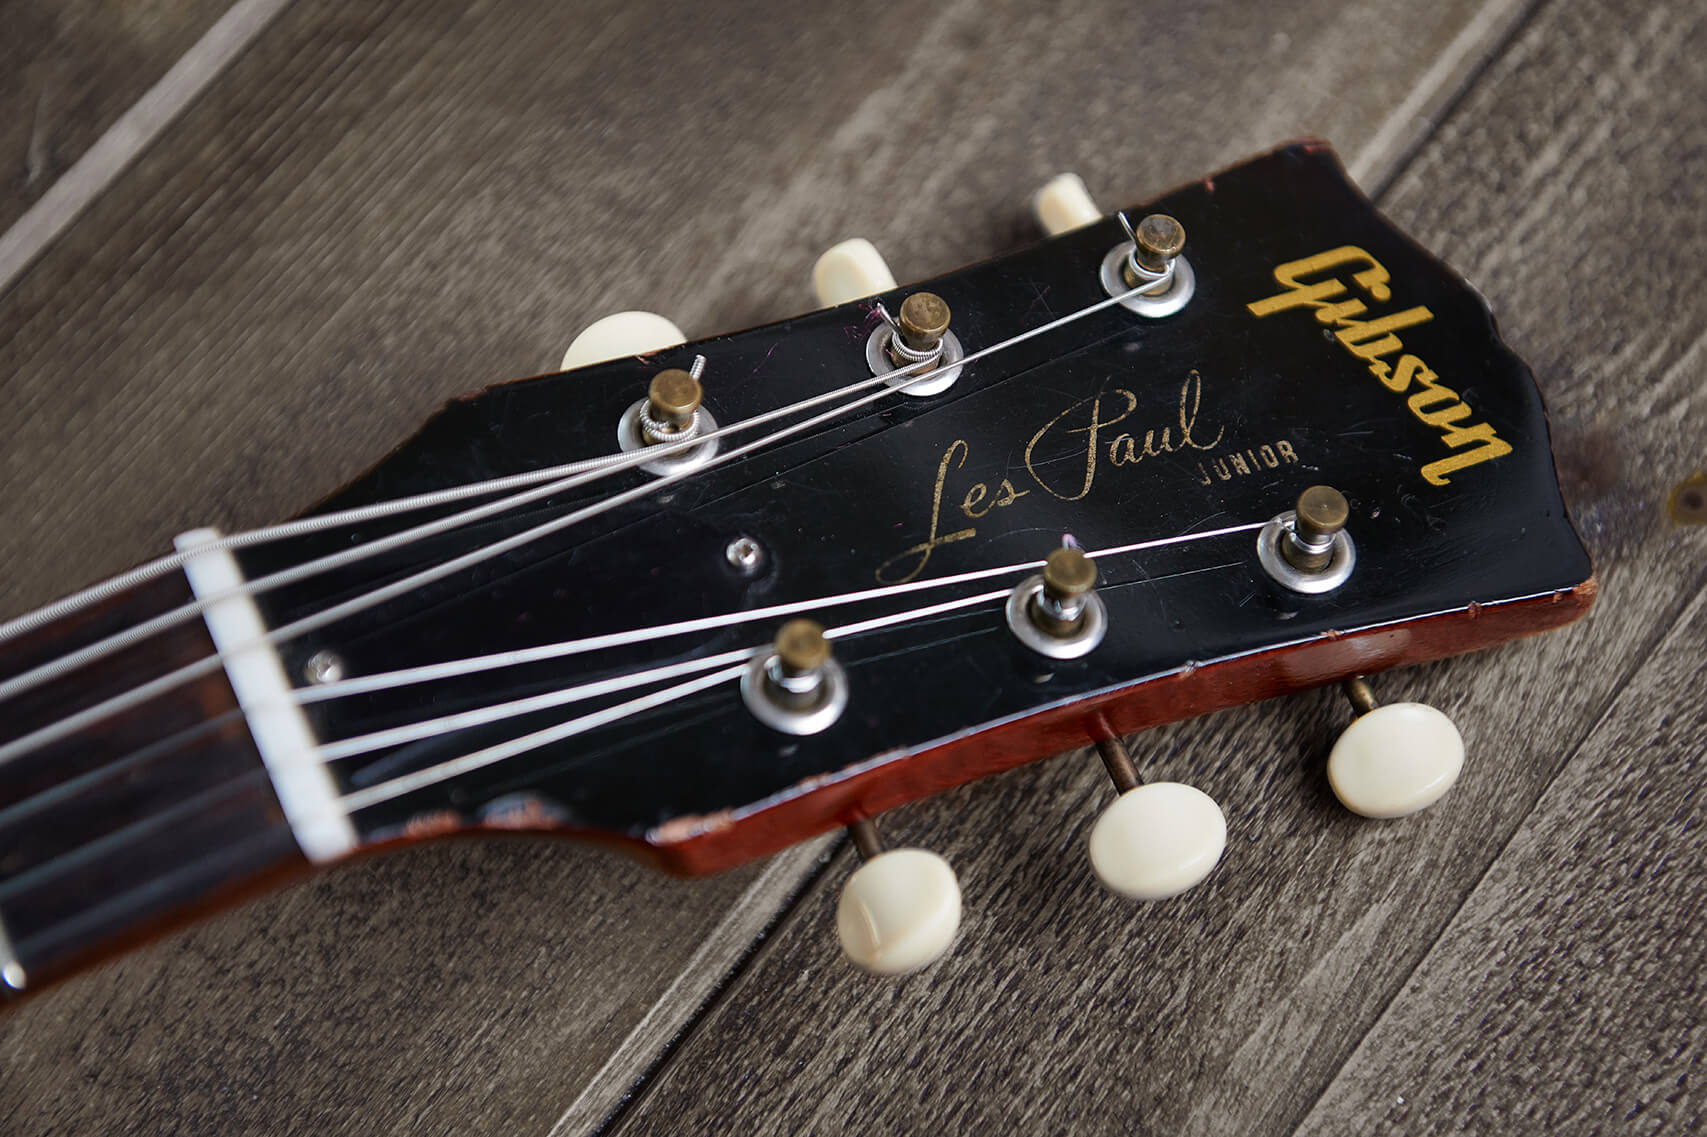 Gibson Les Paul SG Jr Headstock